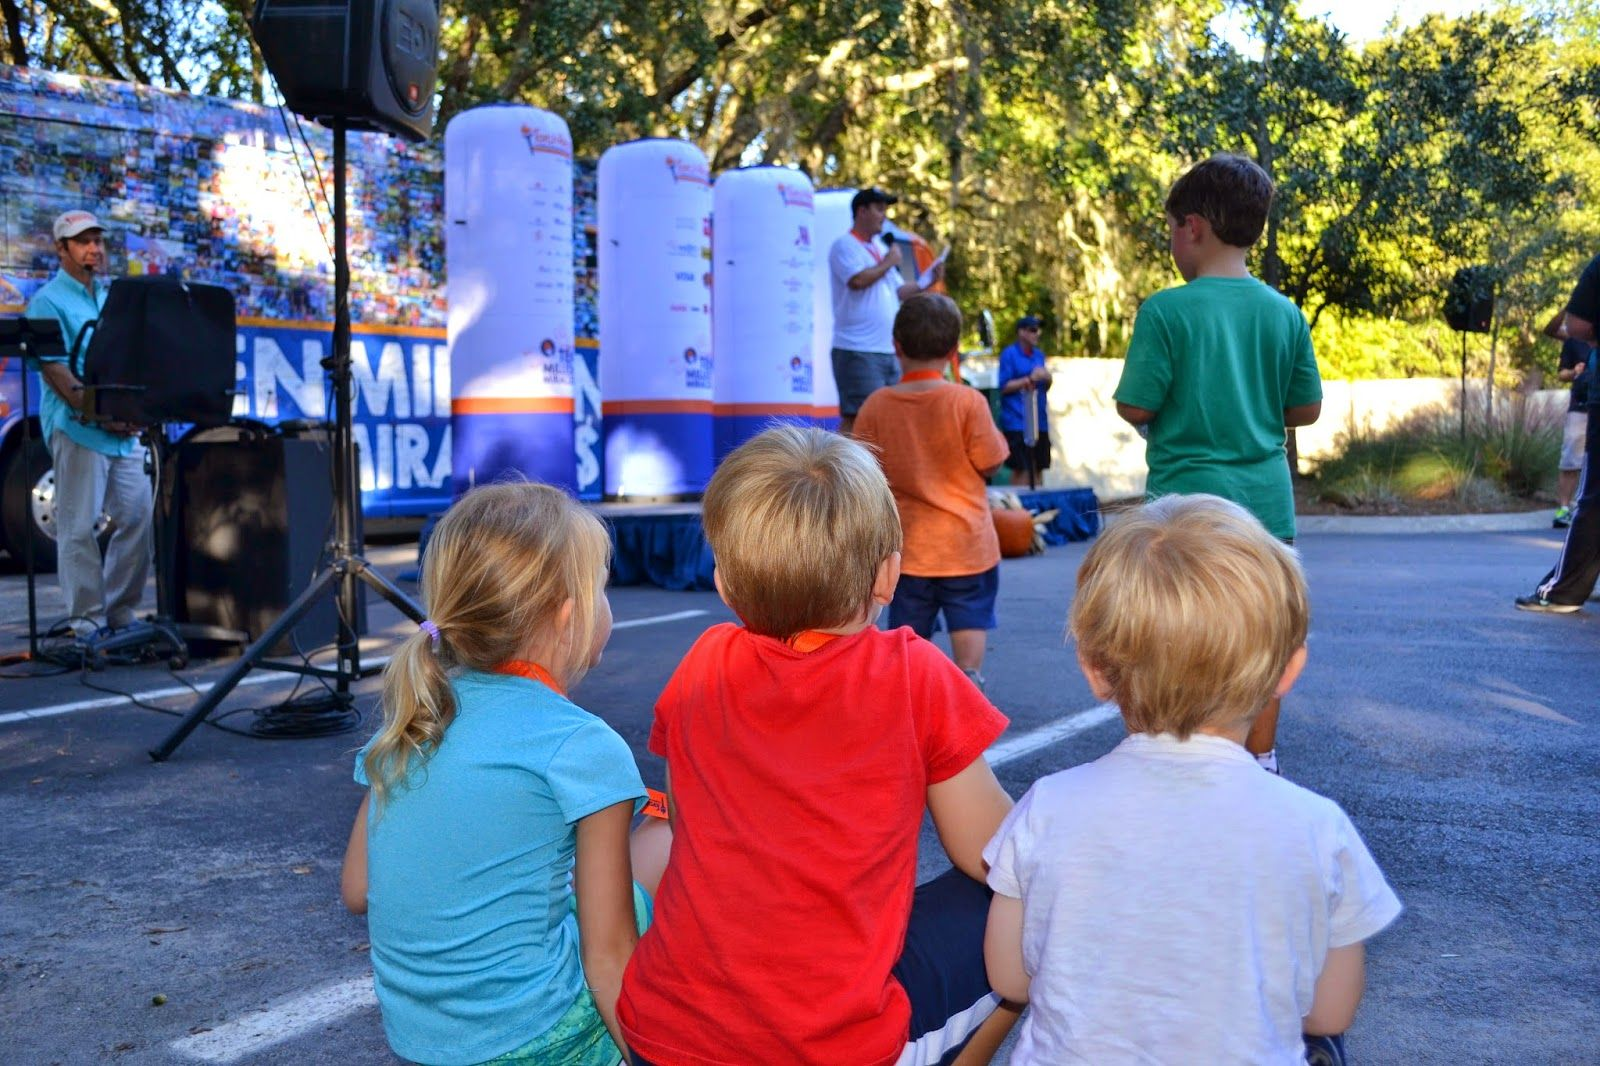 Spencer Special Events : Children's Miracle Network Torch Relay (Event Recap)